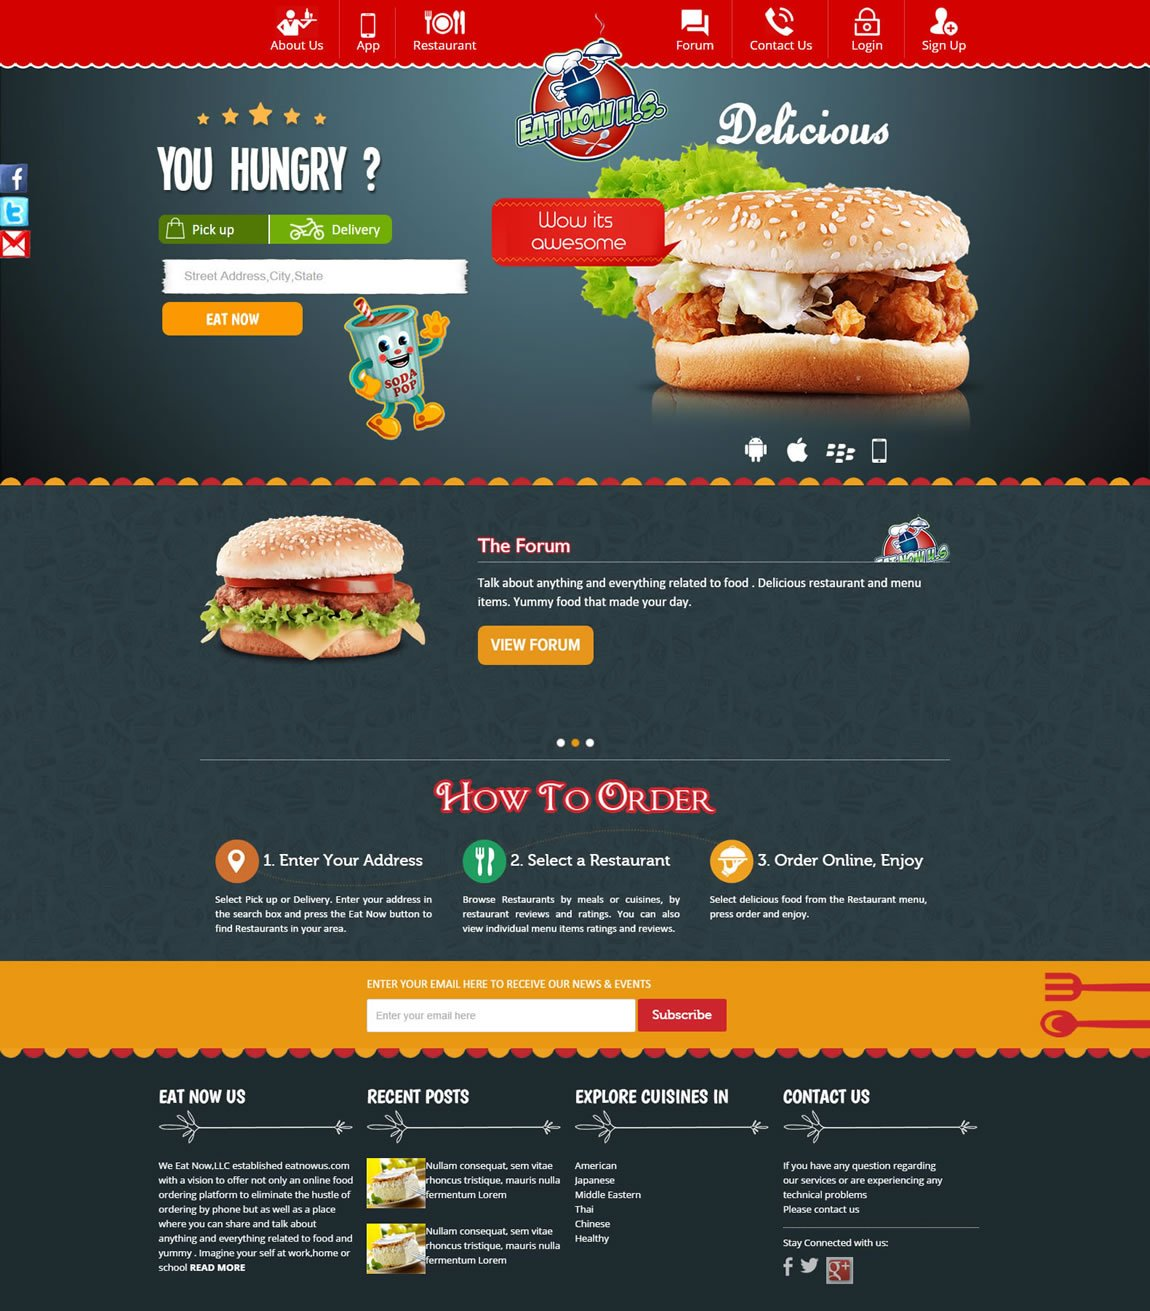 food-ordering-website-portal